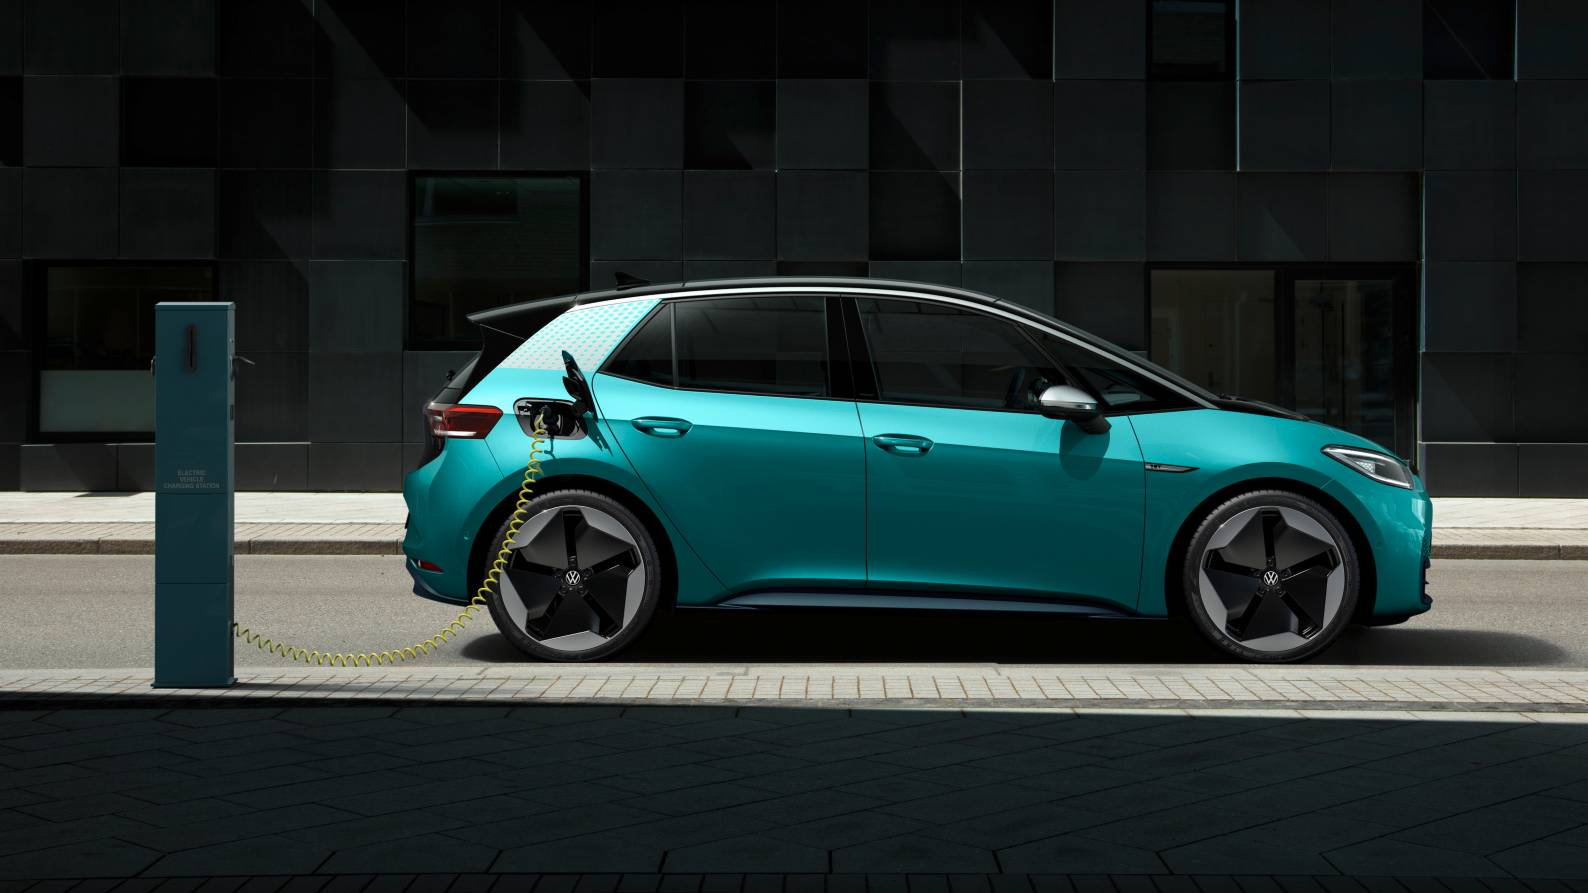 Volkswagen aims to halve battery costs with new single-cell format, will open six gigafactories- Technology News, FP